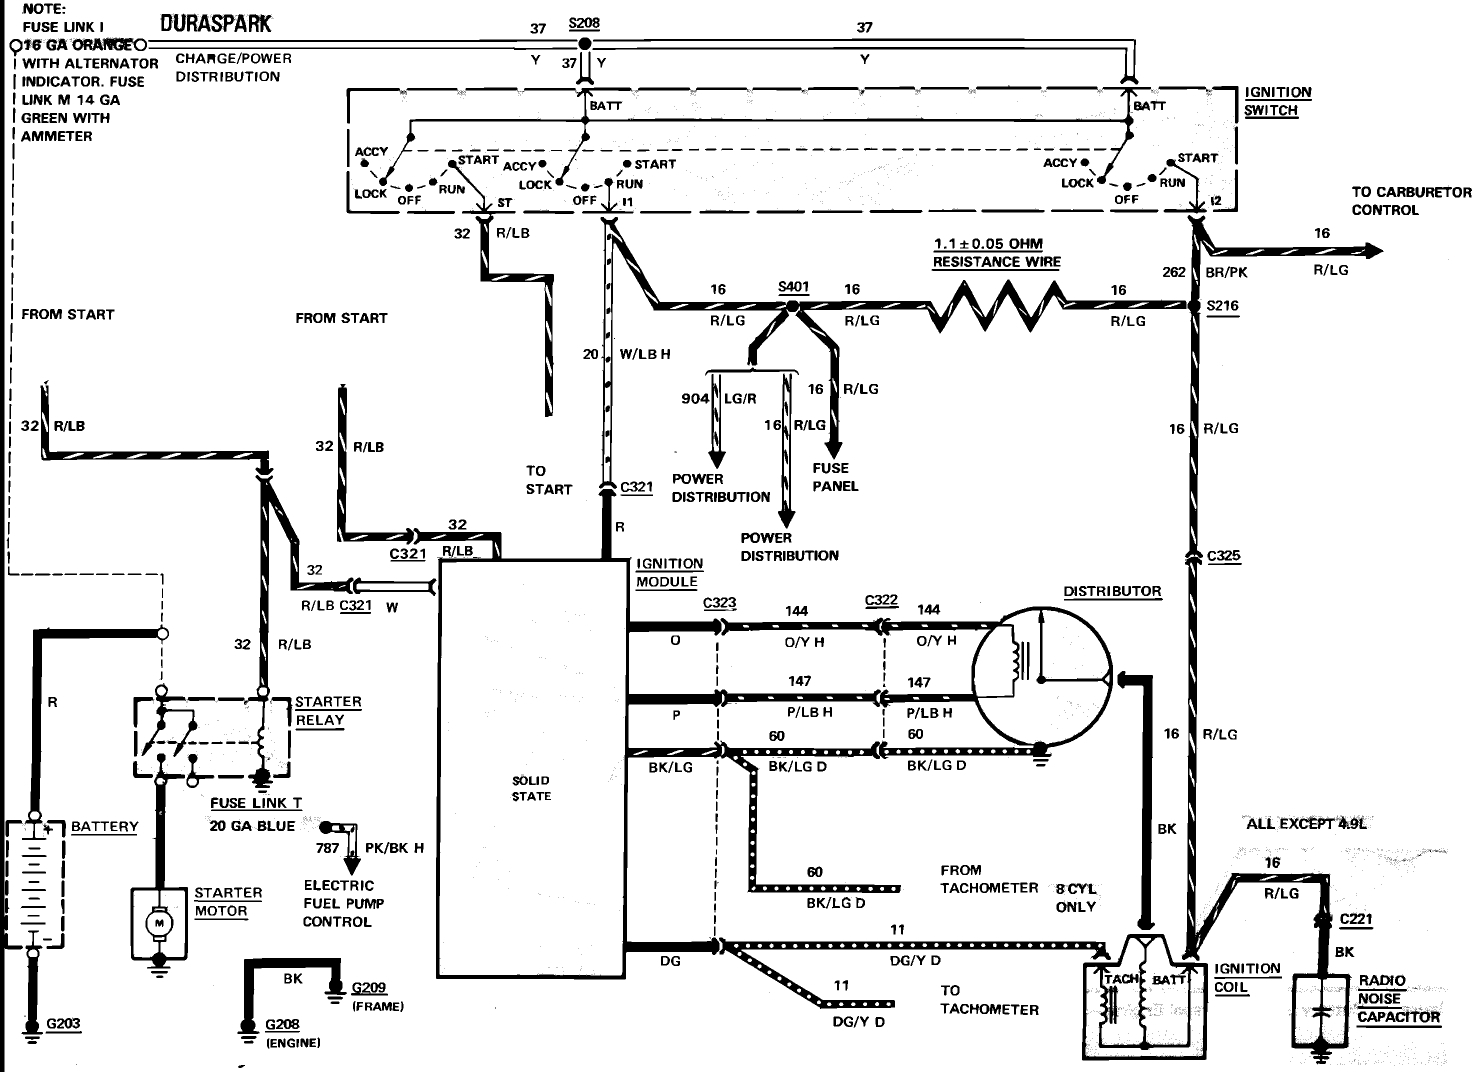 Alternator Wiring Diagram For 1985 Ford F 150 | Wiring ...